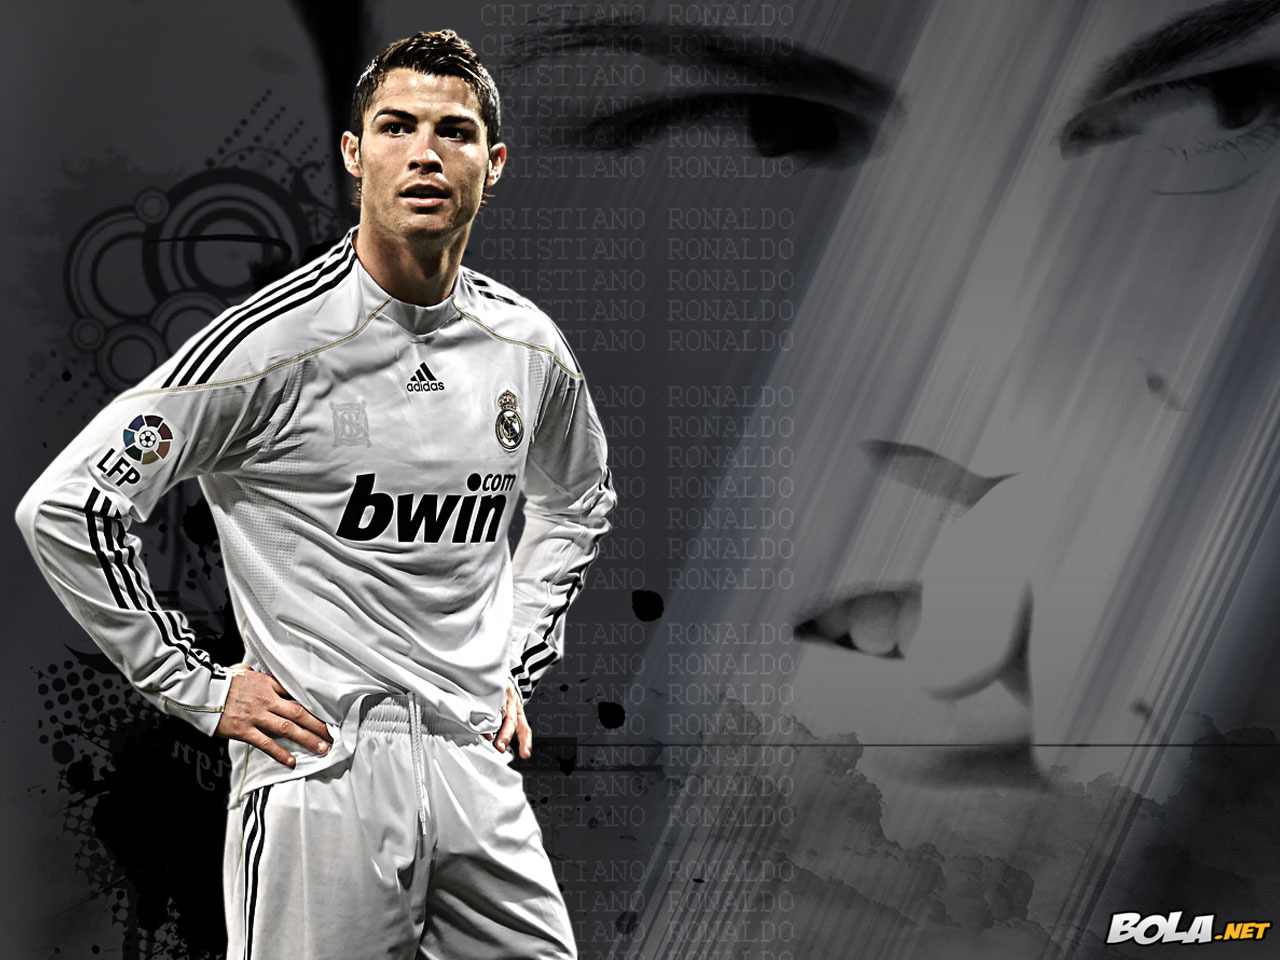 Cristiano Ronaldo HD Wallpapers 2015 Right Click Save Target As 1280x960